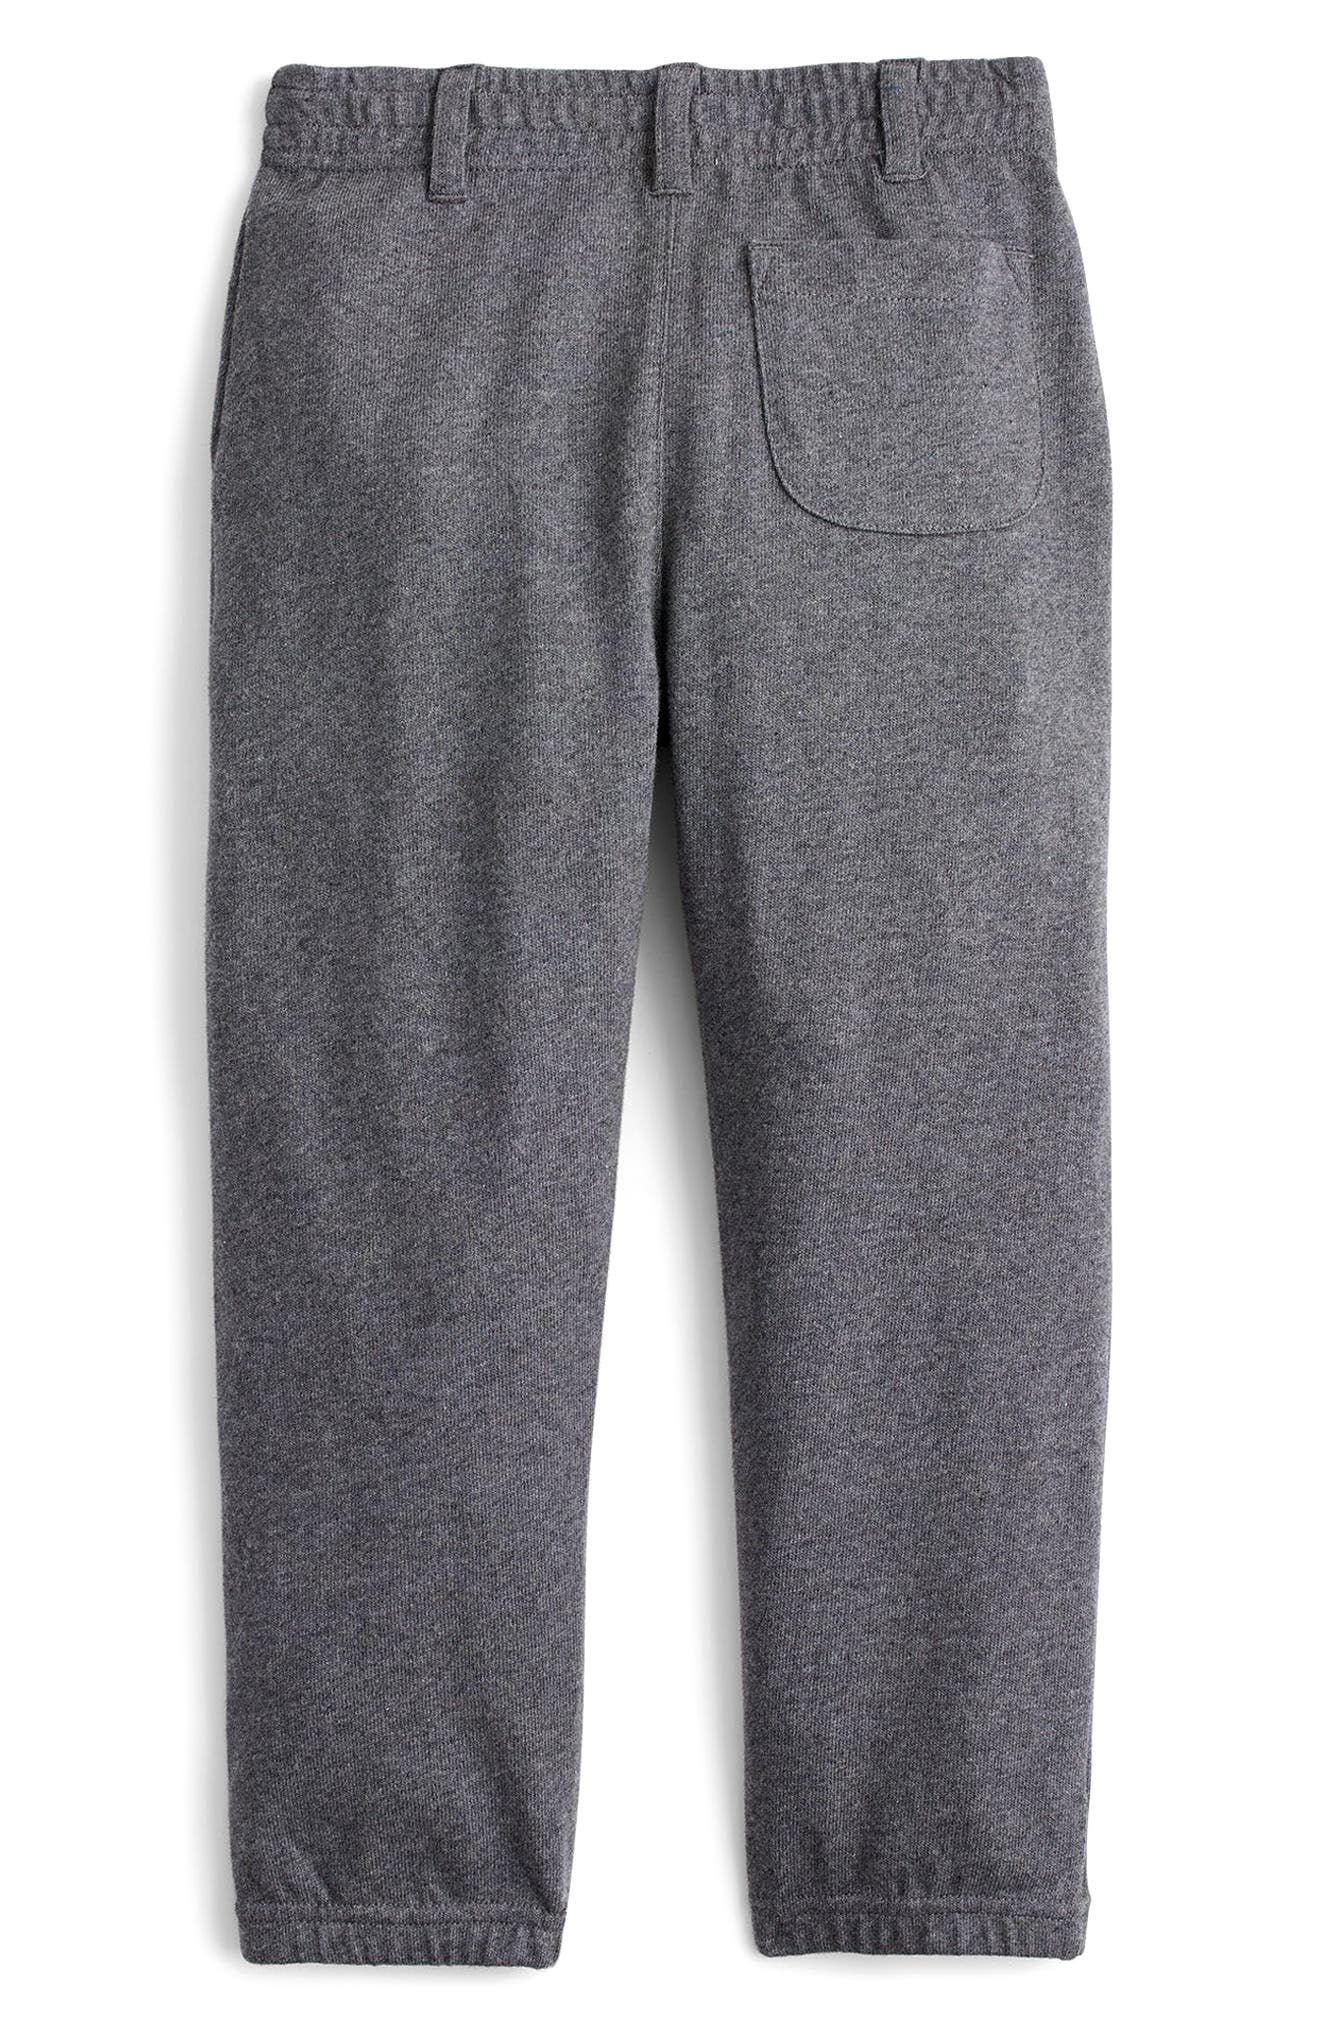 Trouser Sweatpants,                             Alternate thumbnail 2, color,                             Heather Charcoal